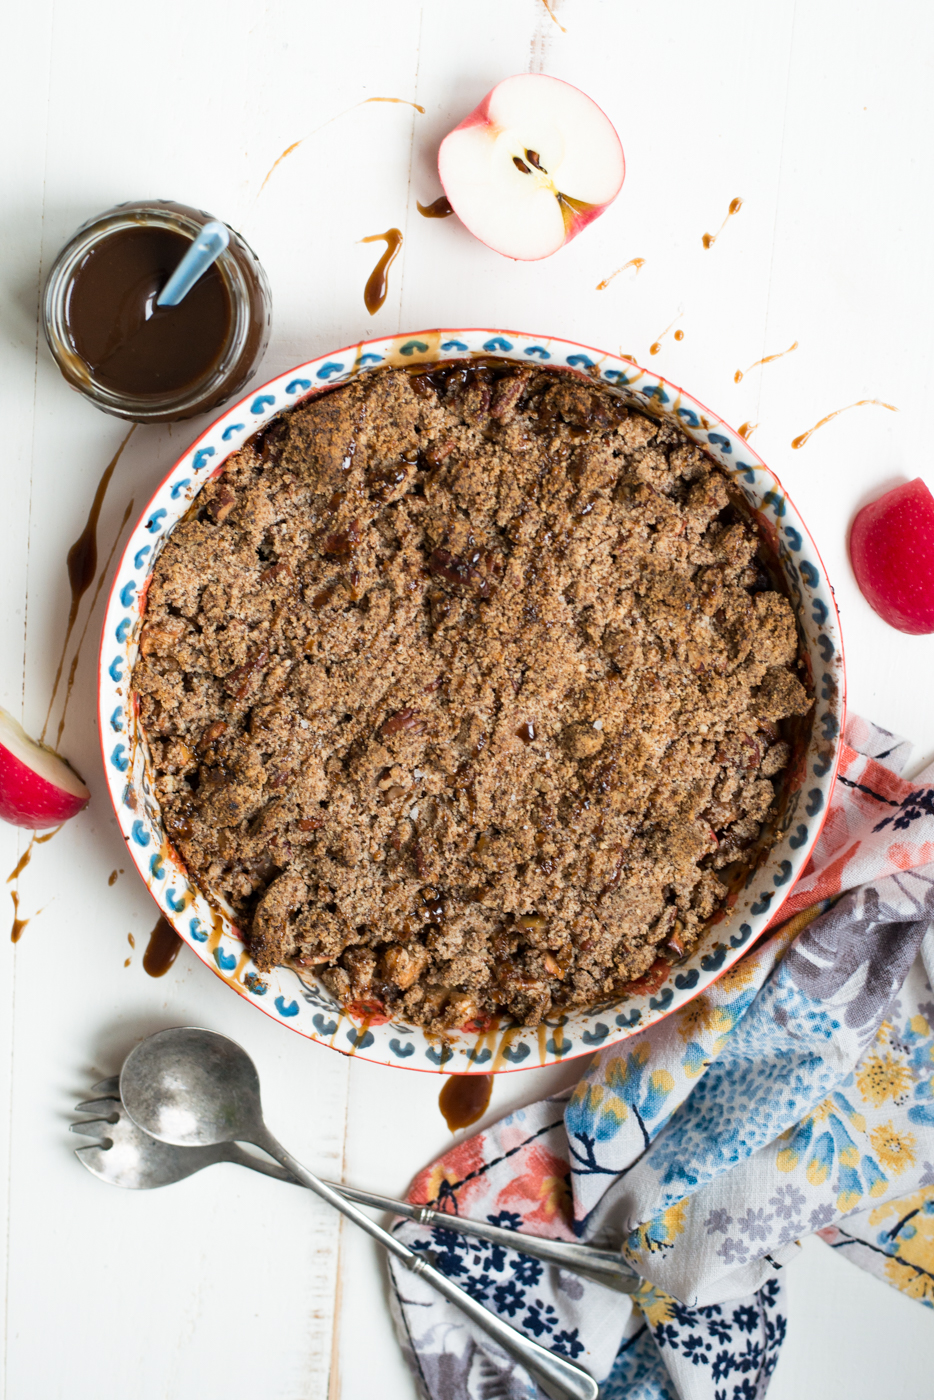 Drizzled with a dreamy caramel sauce (that just happens to be refined sugar-free and dairy-free), Salted Caramel Paleo Apple Crisp is simple to prepare and perfect for your holiday table or dessert, any time! #dairyfree #glutenfree #paleo #dessert #vegan #realfood #recipe #fall #applecrisp